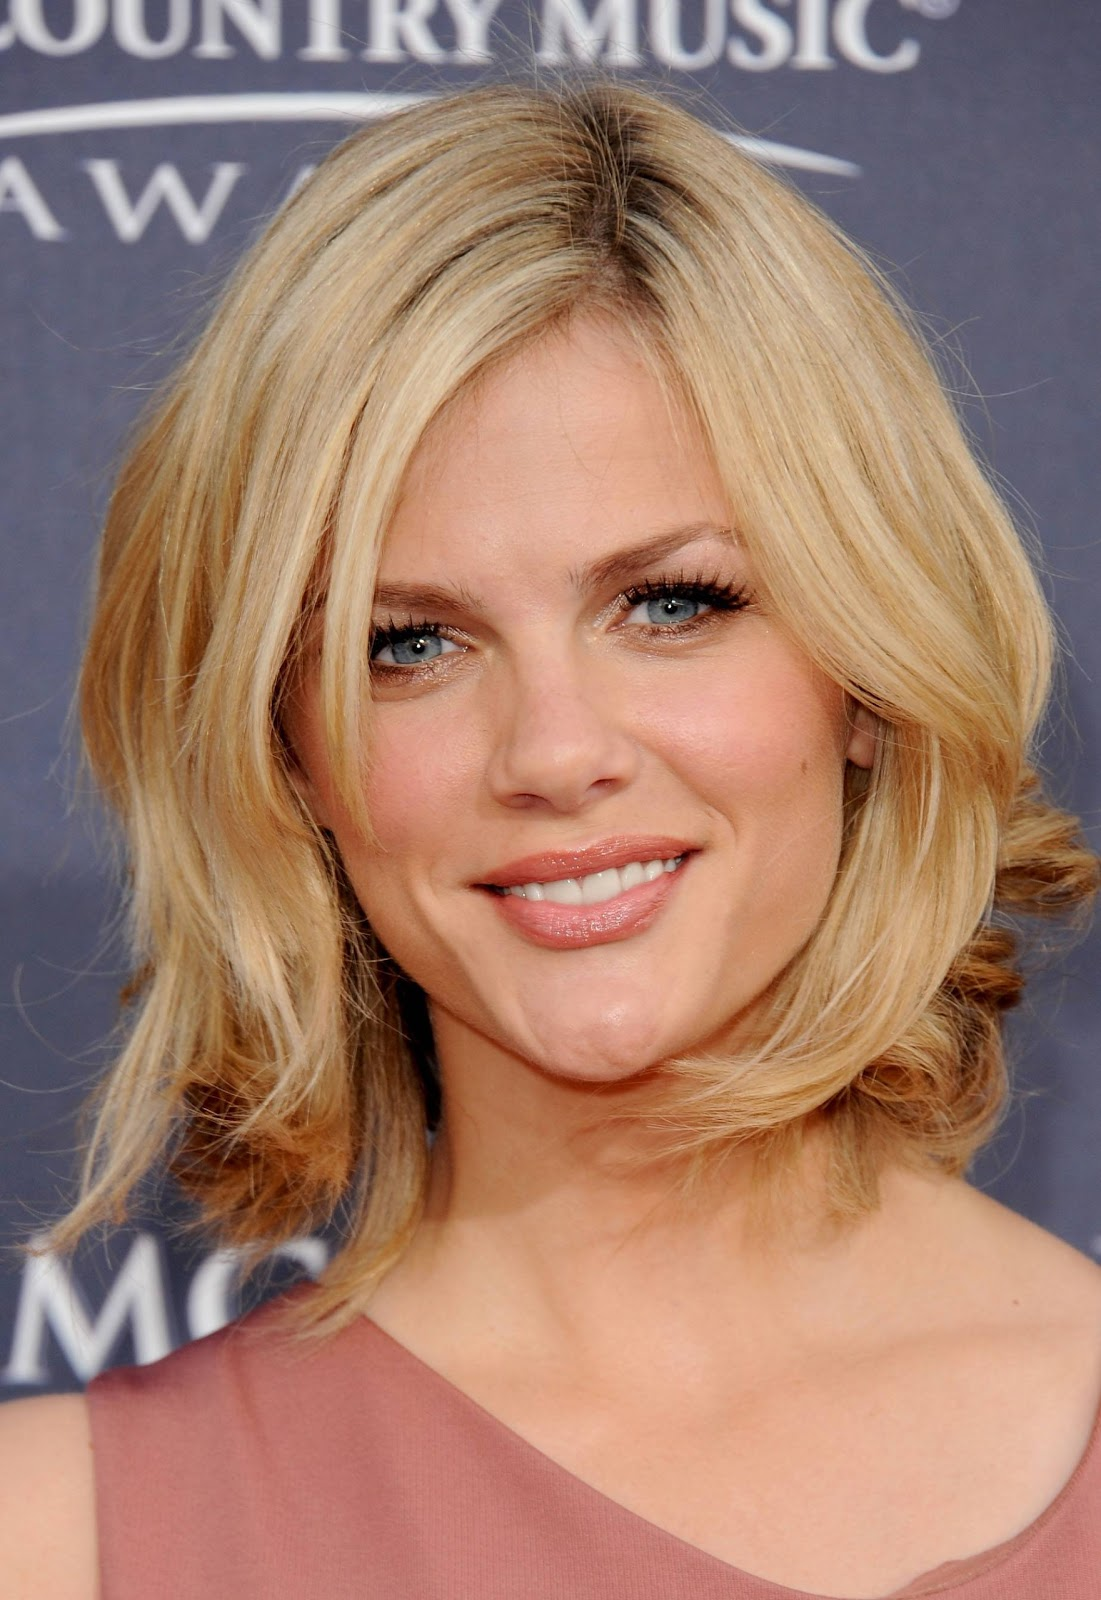 Prom Romance Hairstyles, Long Hairstyle 2013, Hairstyle 2013, New Long Hairstyle 2013, Celebrity Long Romance Hairstyles 2263